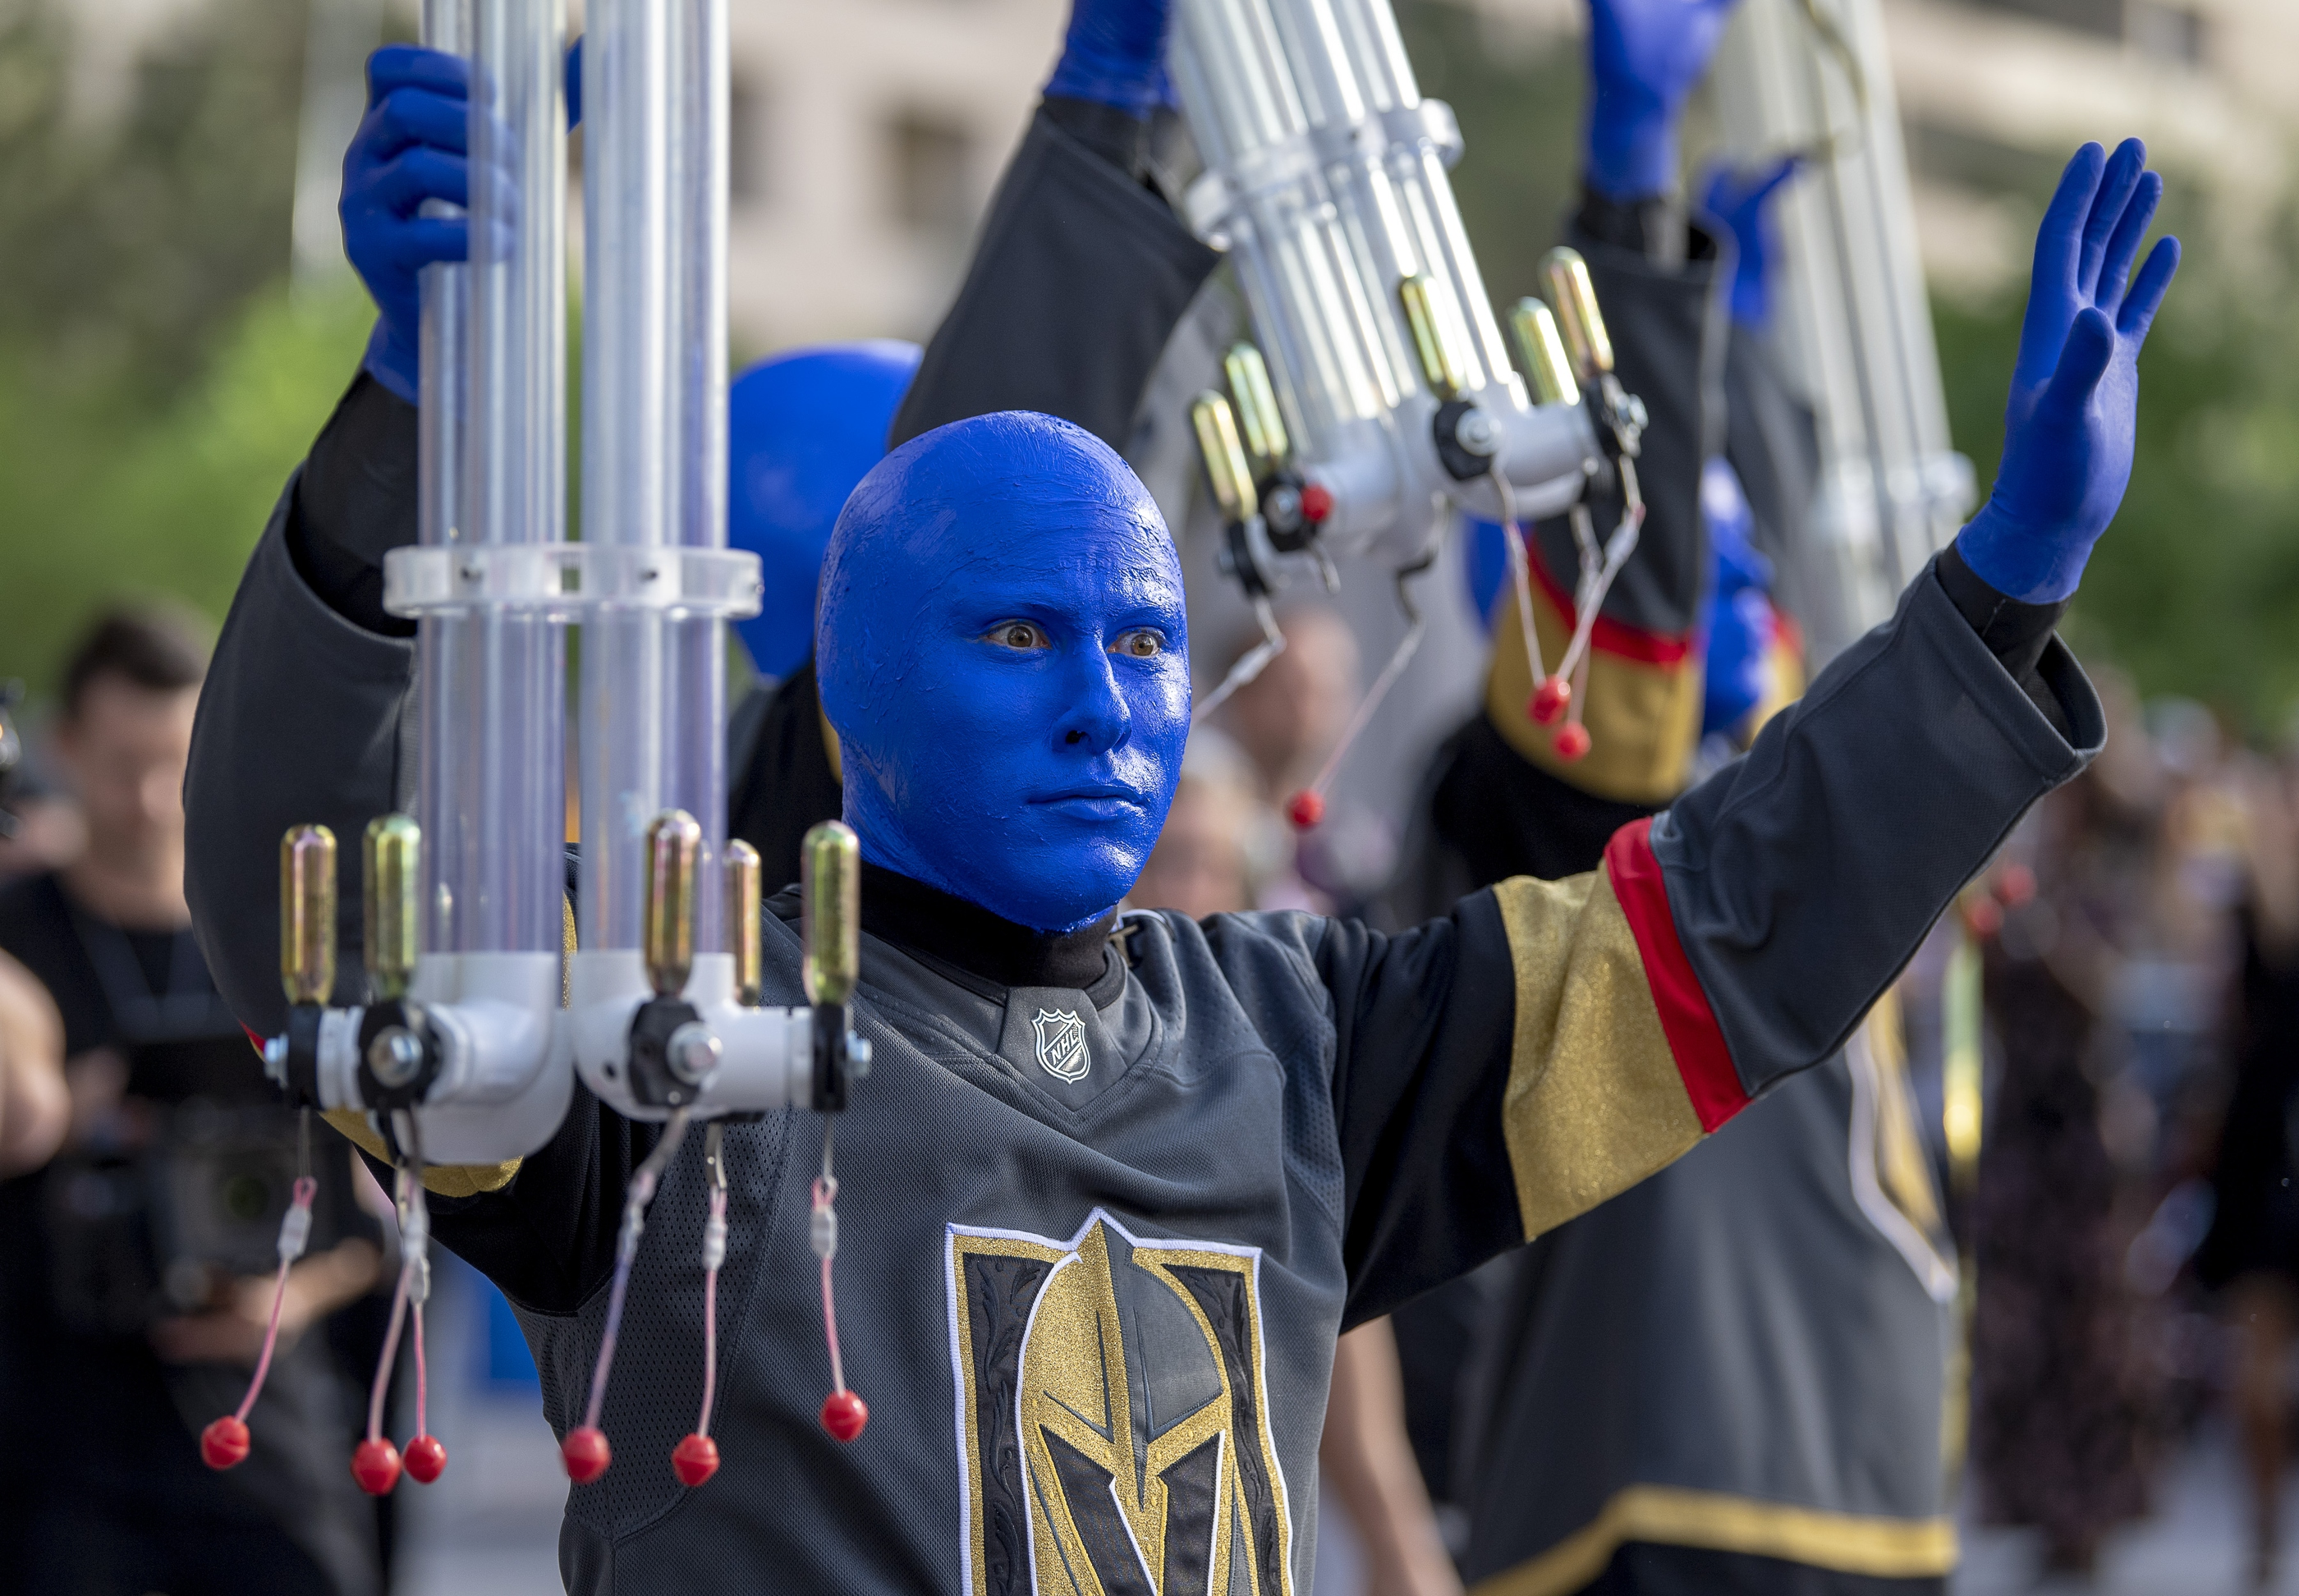 The Blue Man Group performs as aprt of the pre-game celebration in Toshiba Plaza as the Vegas Golden Knights prepare to meet the Los Angeles Kings in the first quarterfinal game of the NHL Stanley Cup Playoffs at T-Mobile Arena in Las Vegas on Wednesday, April 11, 2018.  CREDIT: Mark Damon/Las Vegas News Bureau